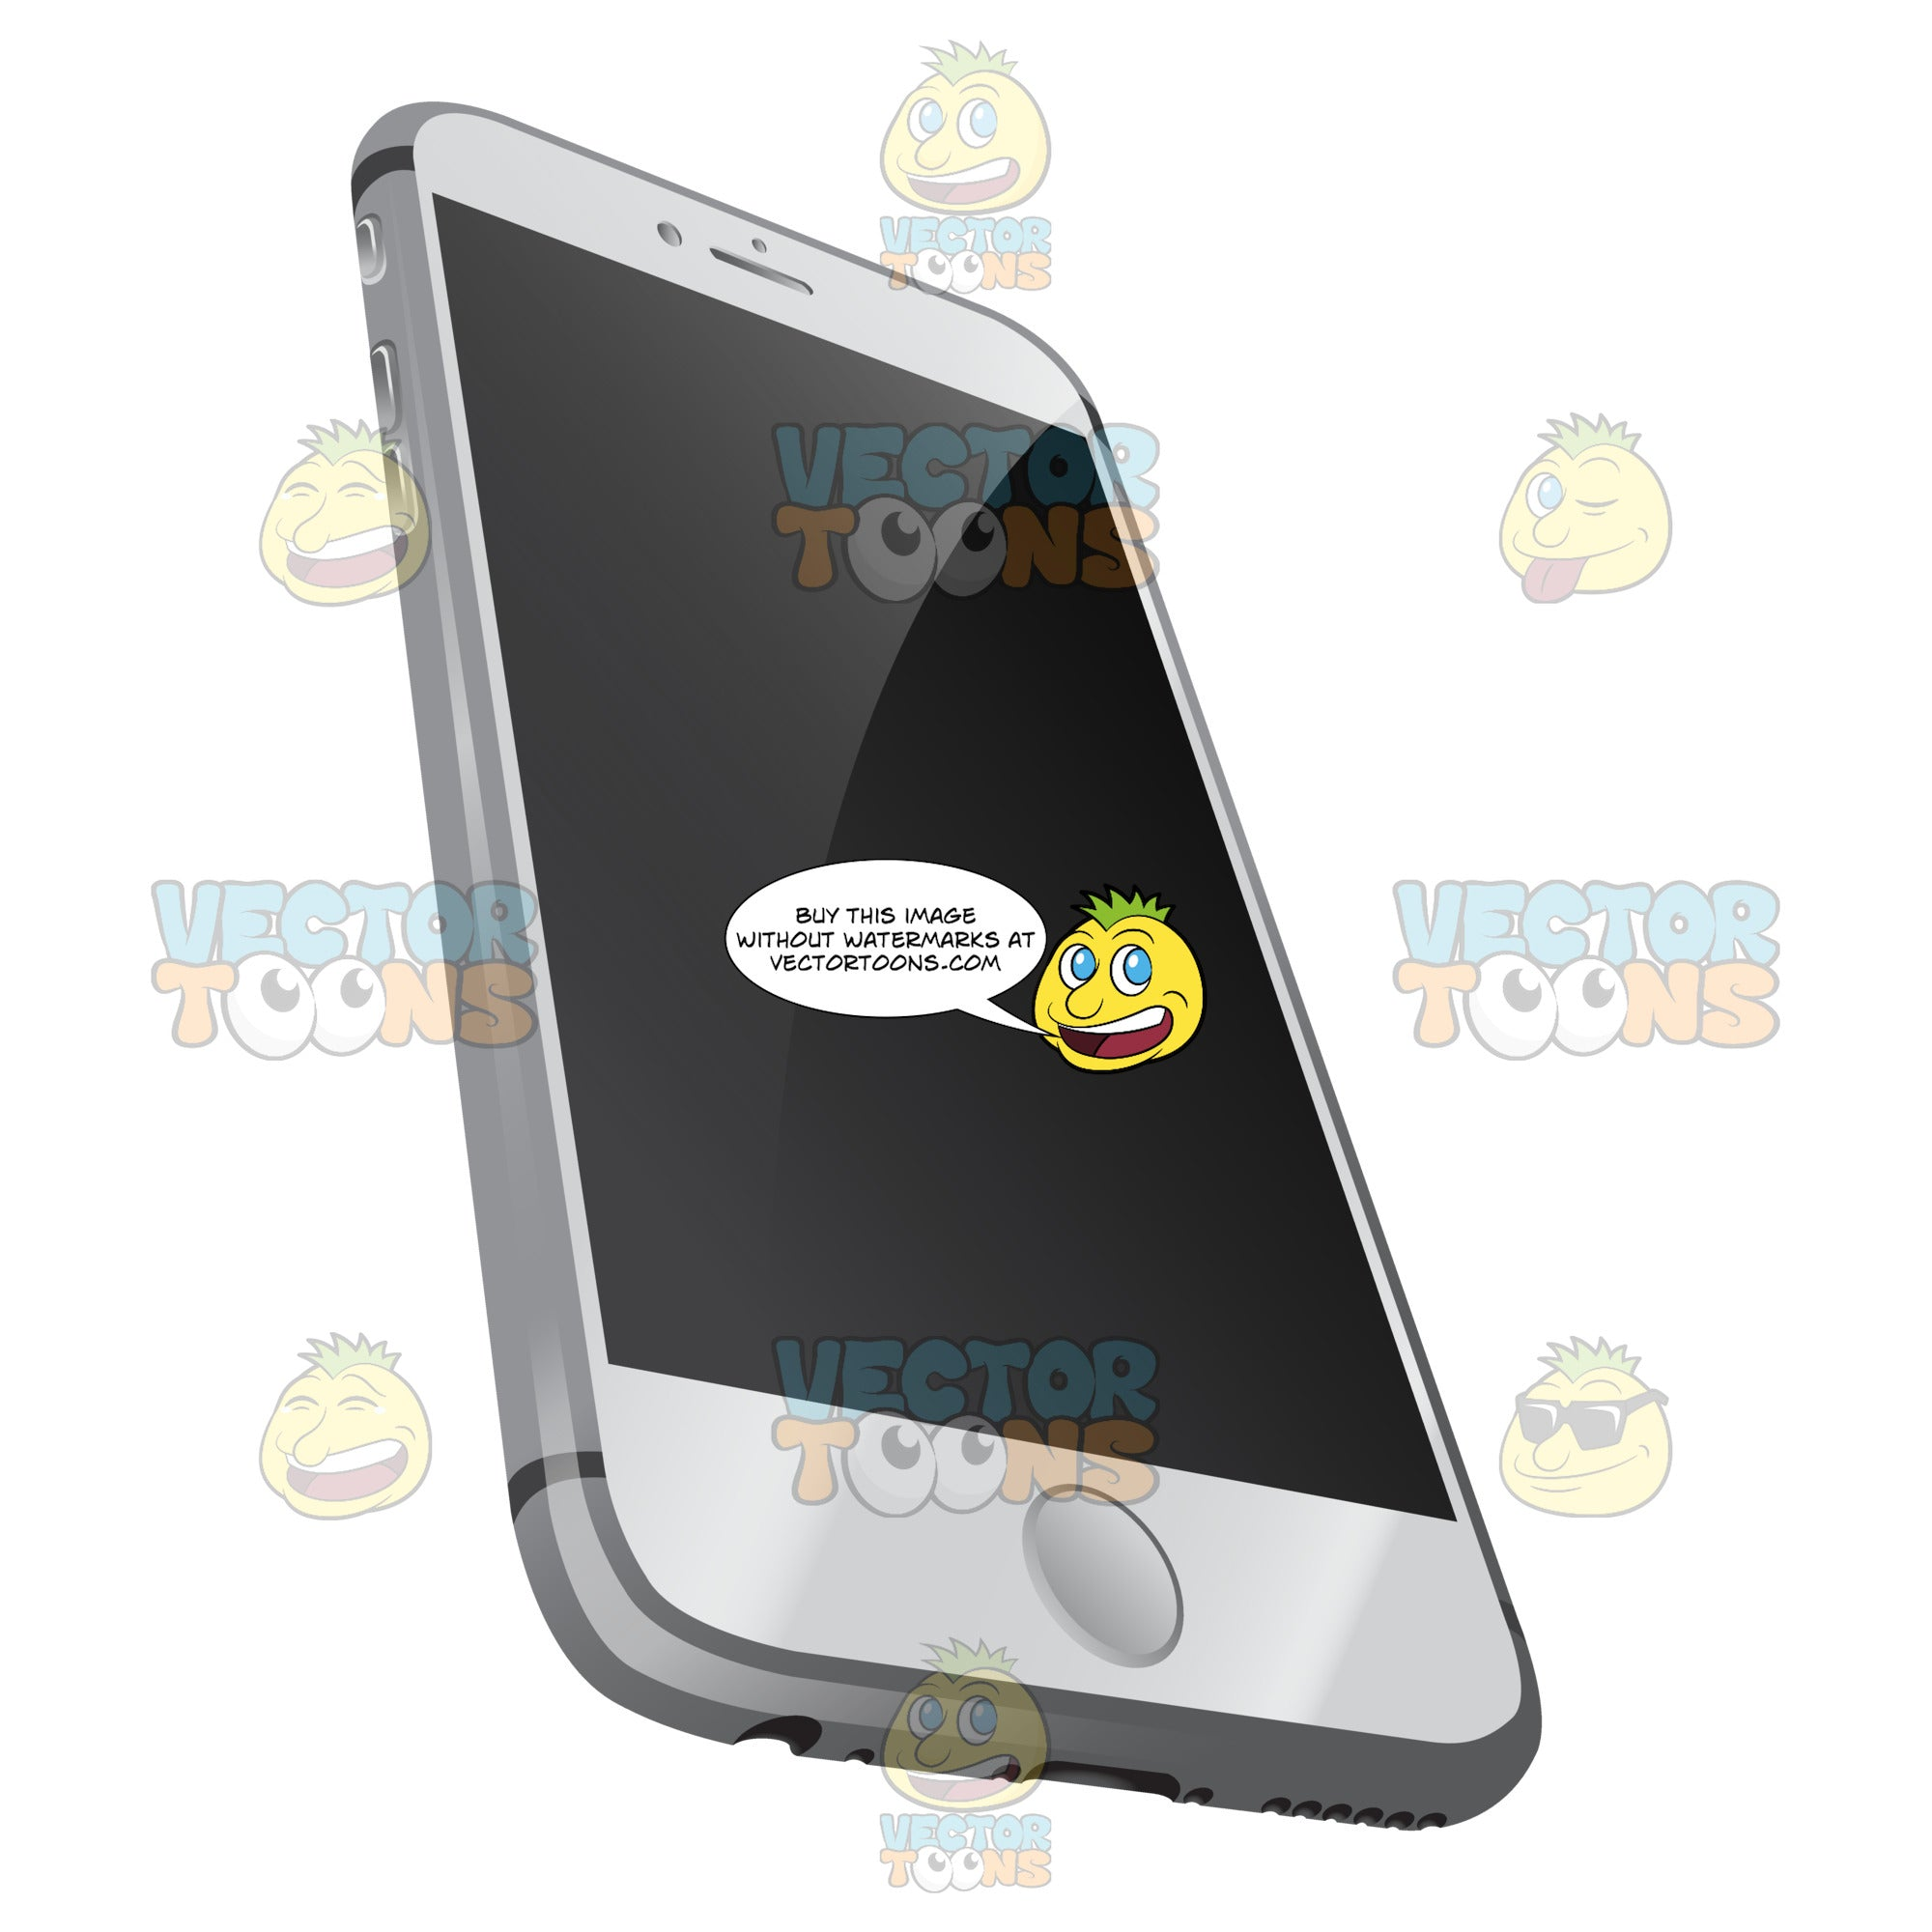 Perspective Vector Image Of Sleek White Mobile Phone With Chrome Sides